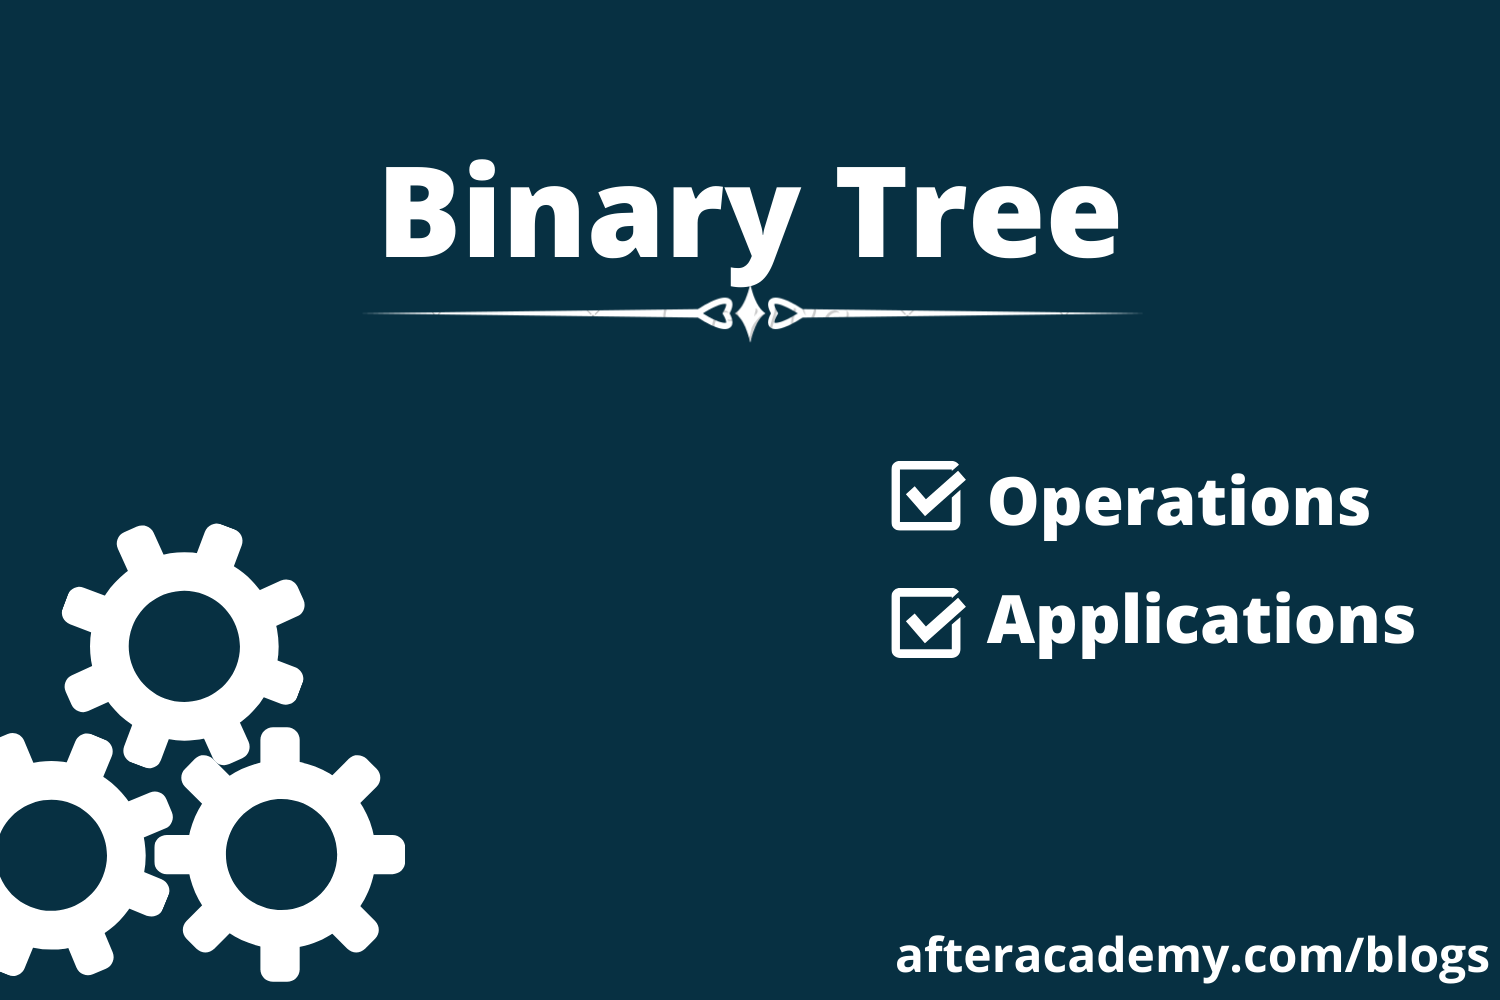 What are the operations implemented in tree and what are its applications?